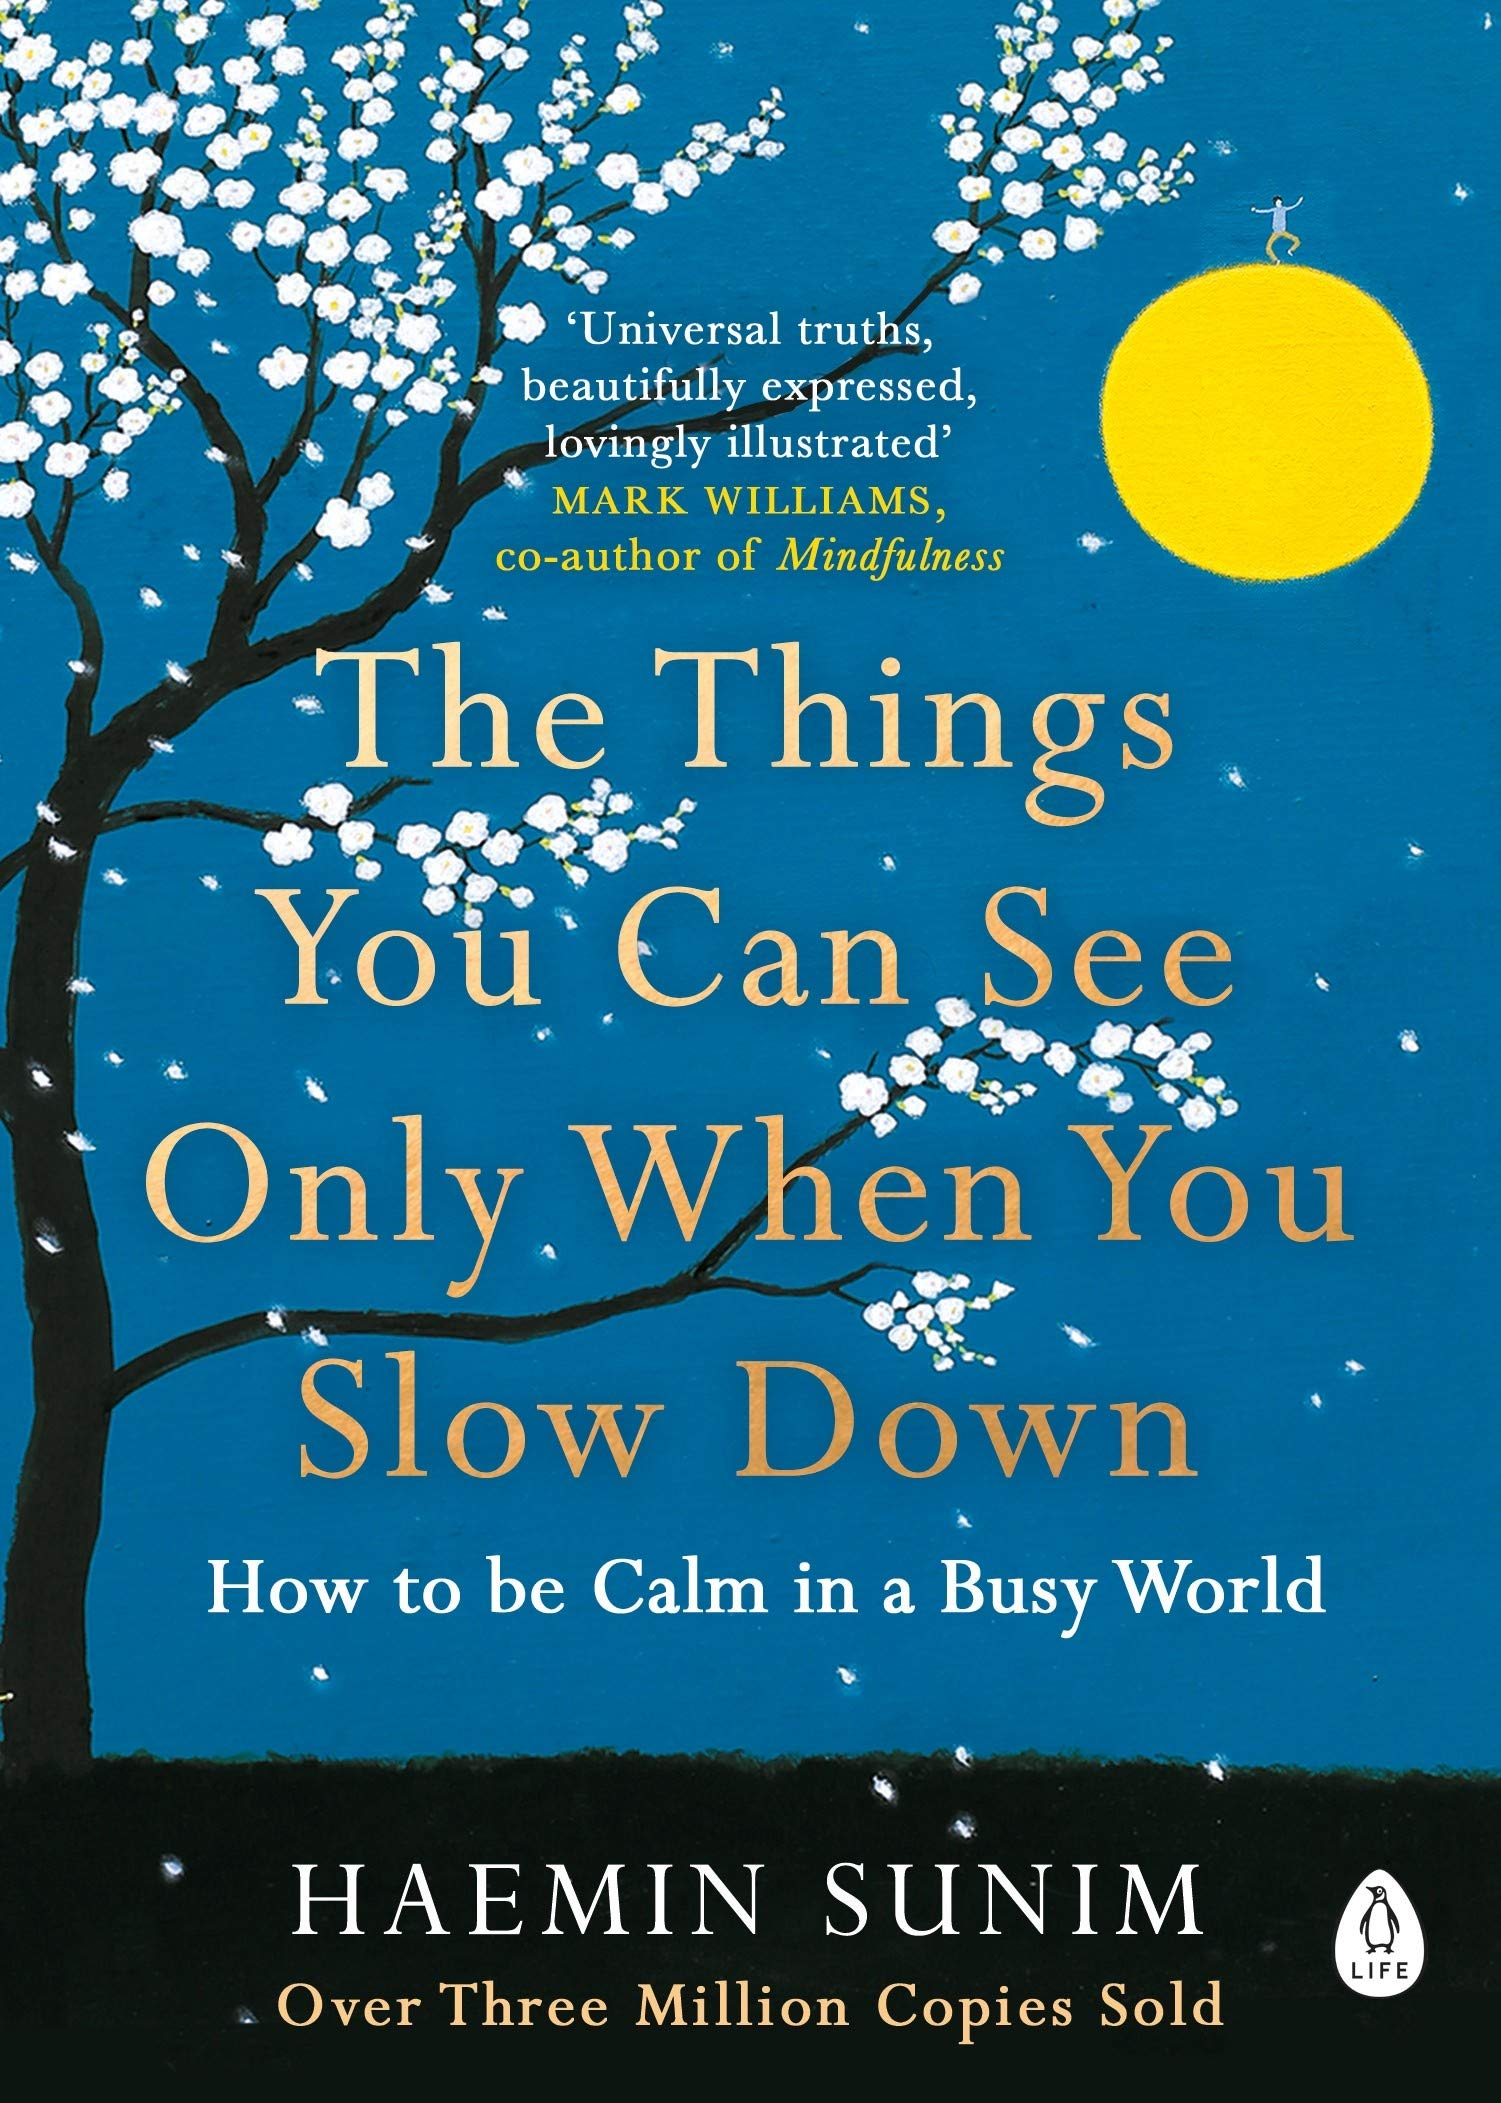 The Things You Can See Only When You Slow Down | Book